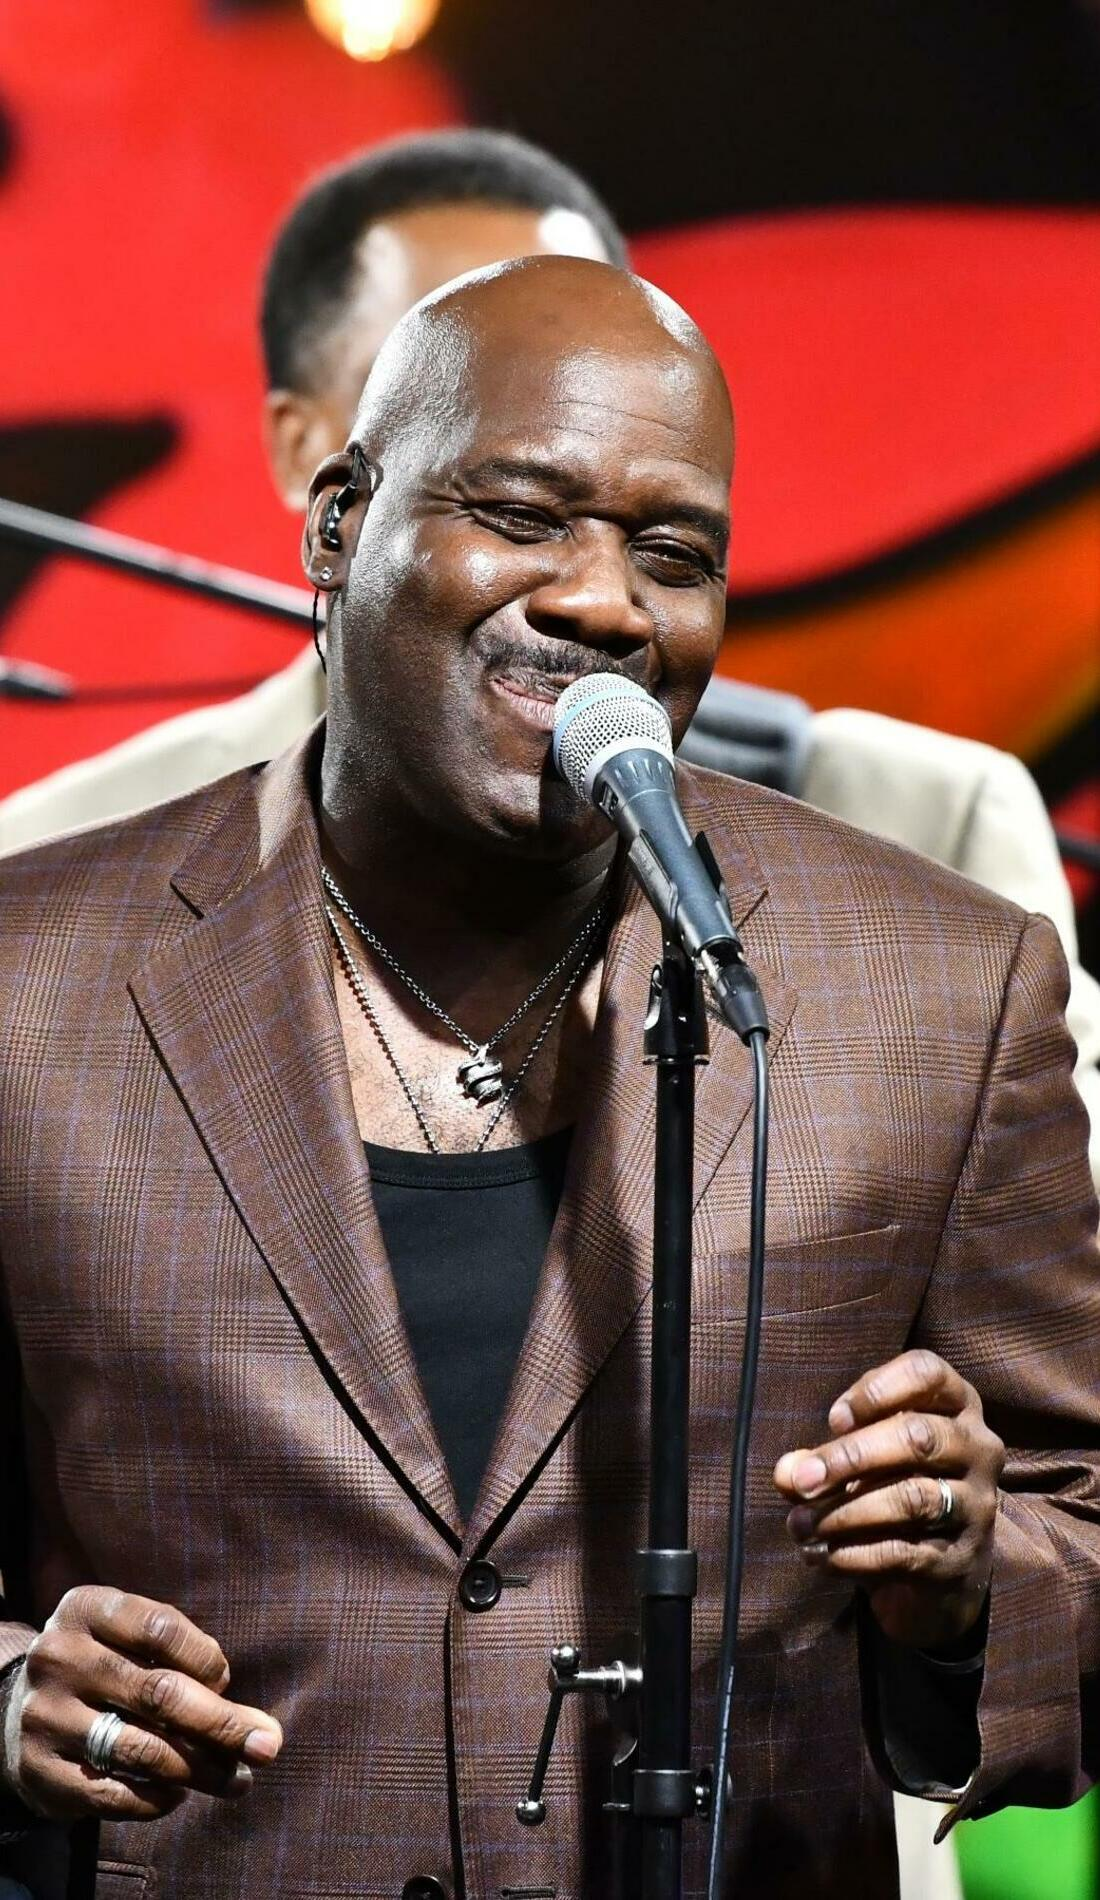 A Will Downing live event